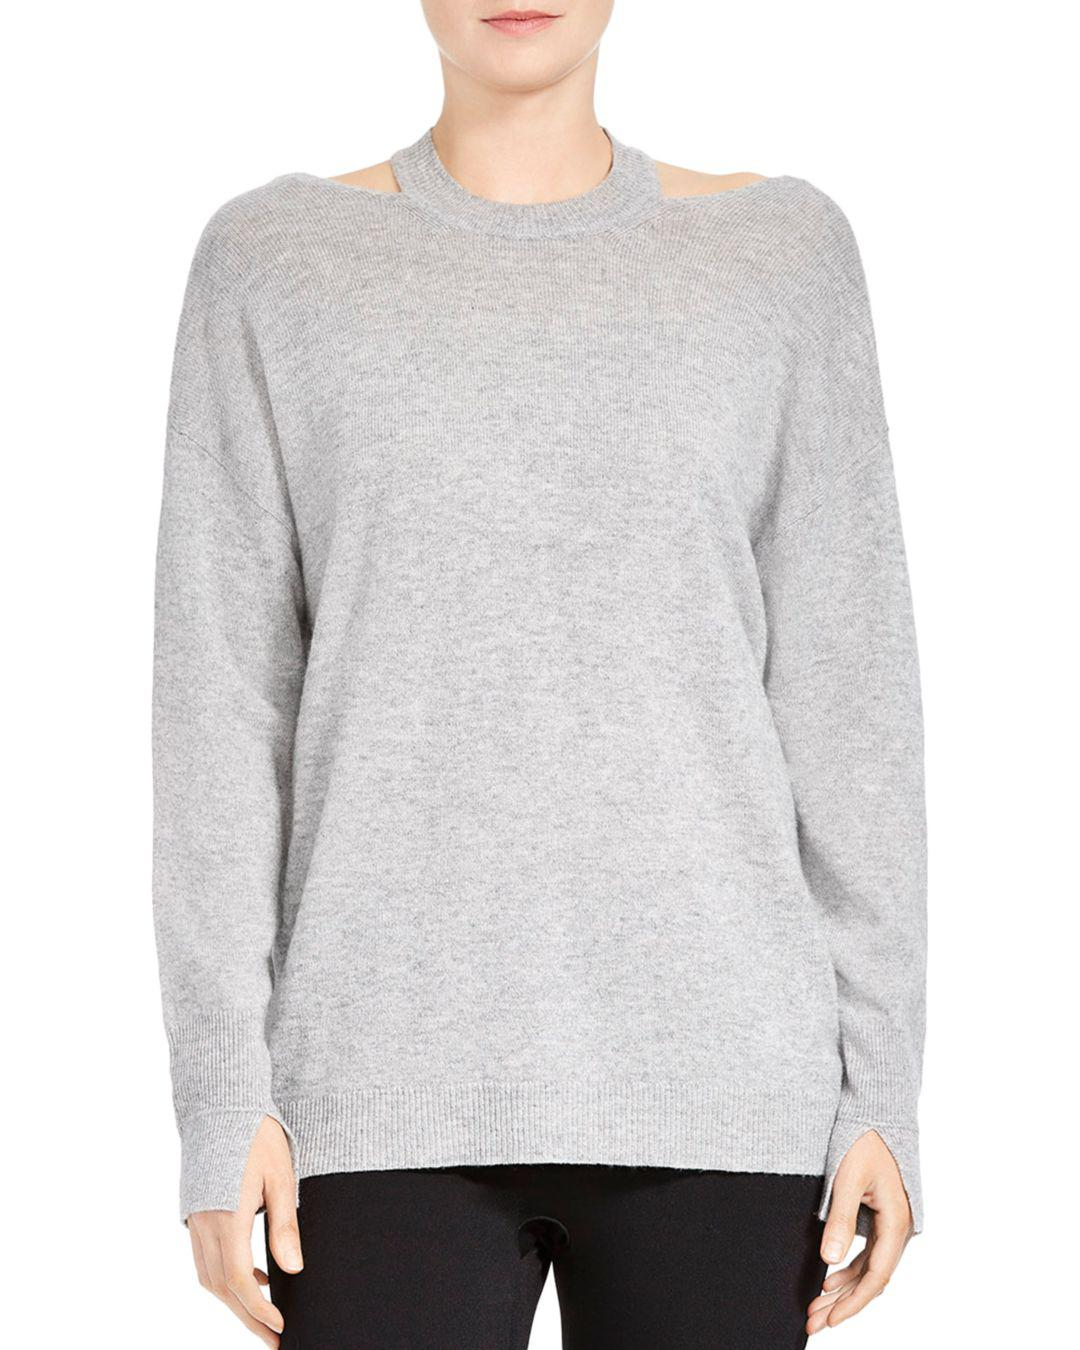 4a83aed2282 Lyst - Halston Merino Wool   Cashmere Cutout Sweater in Gray